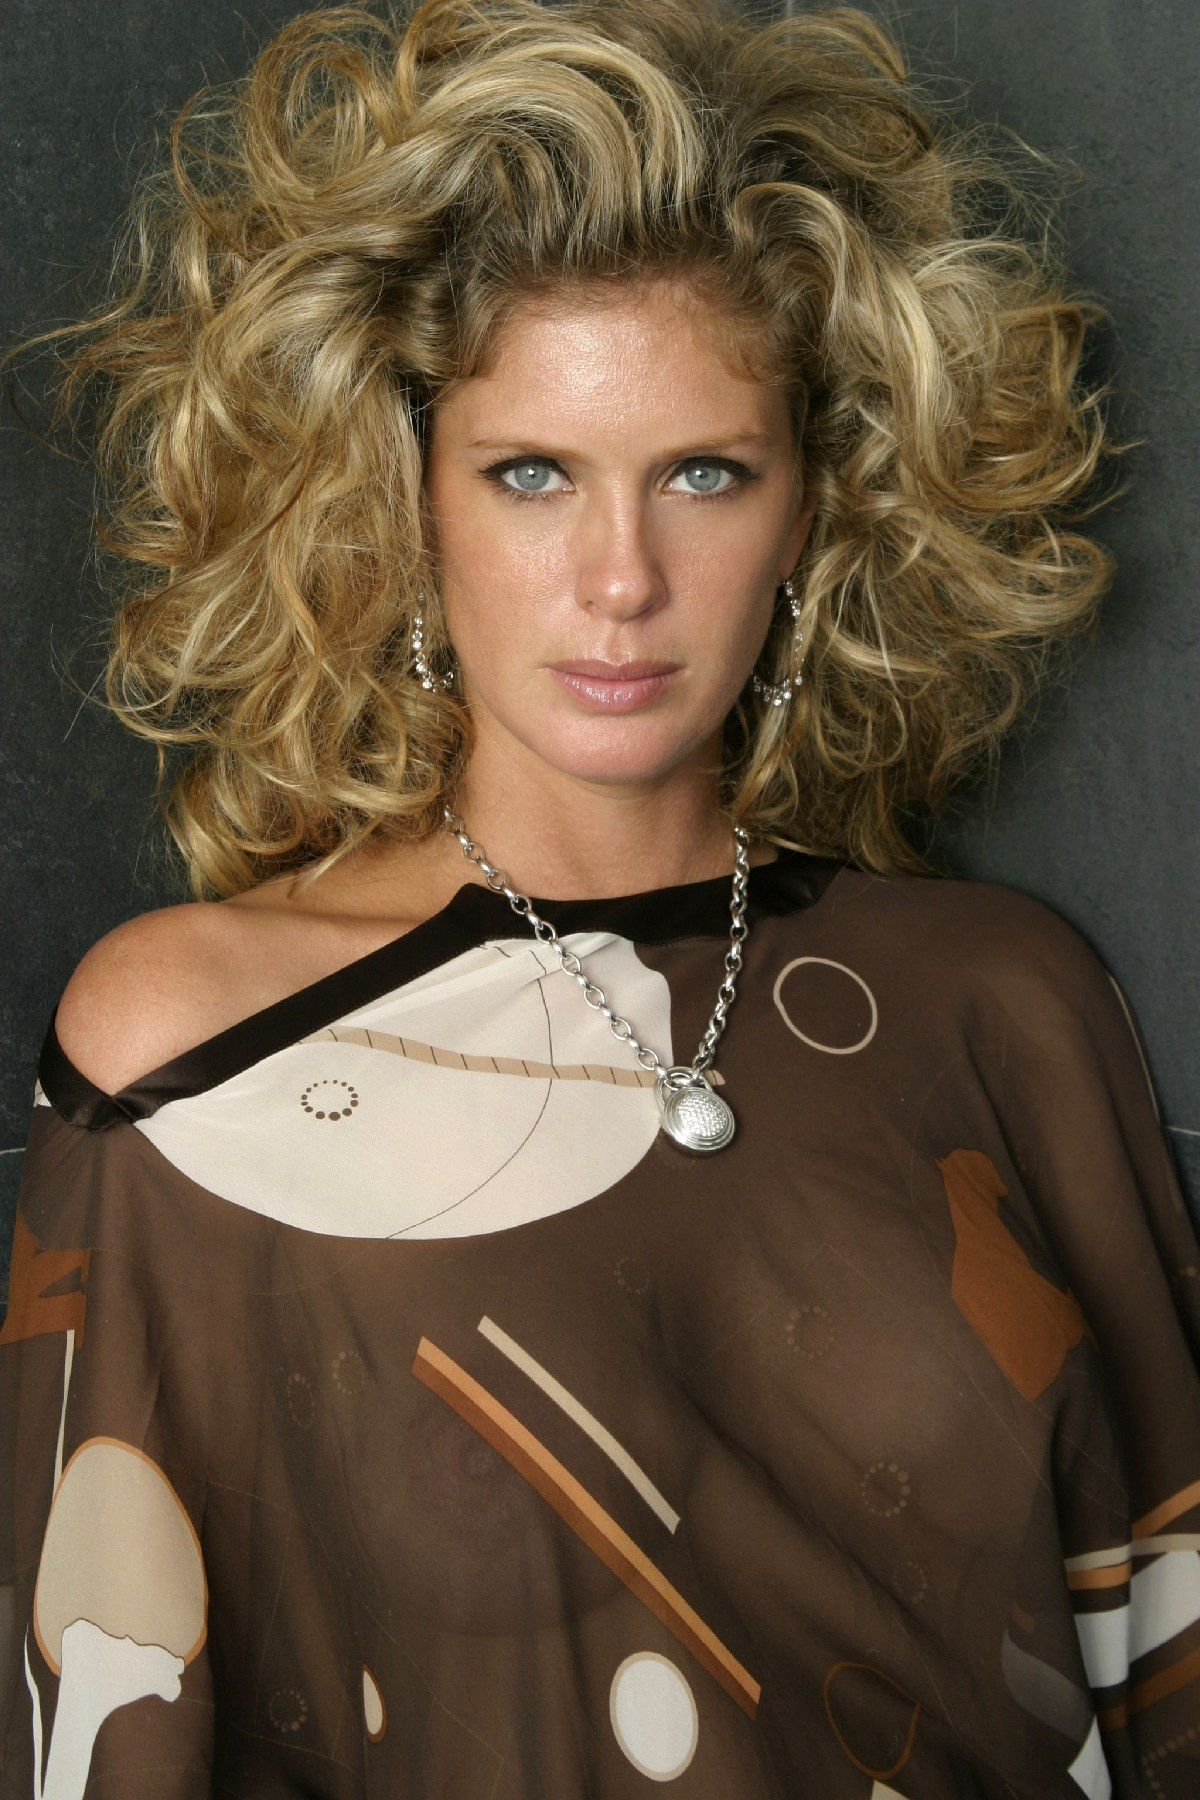 rachel hunter facebook